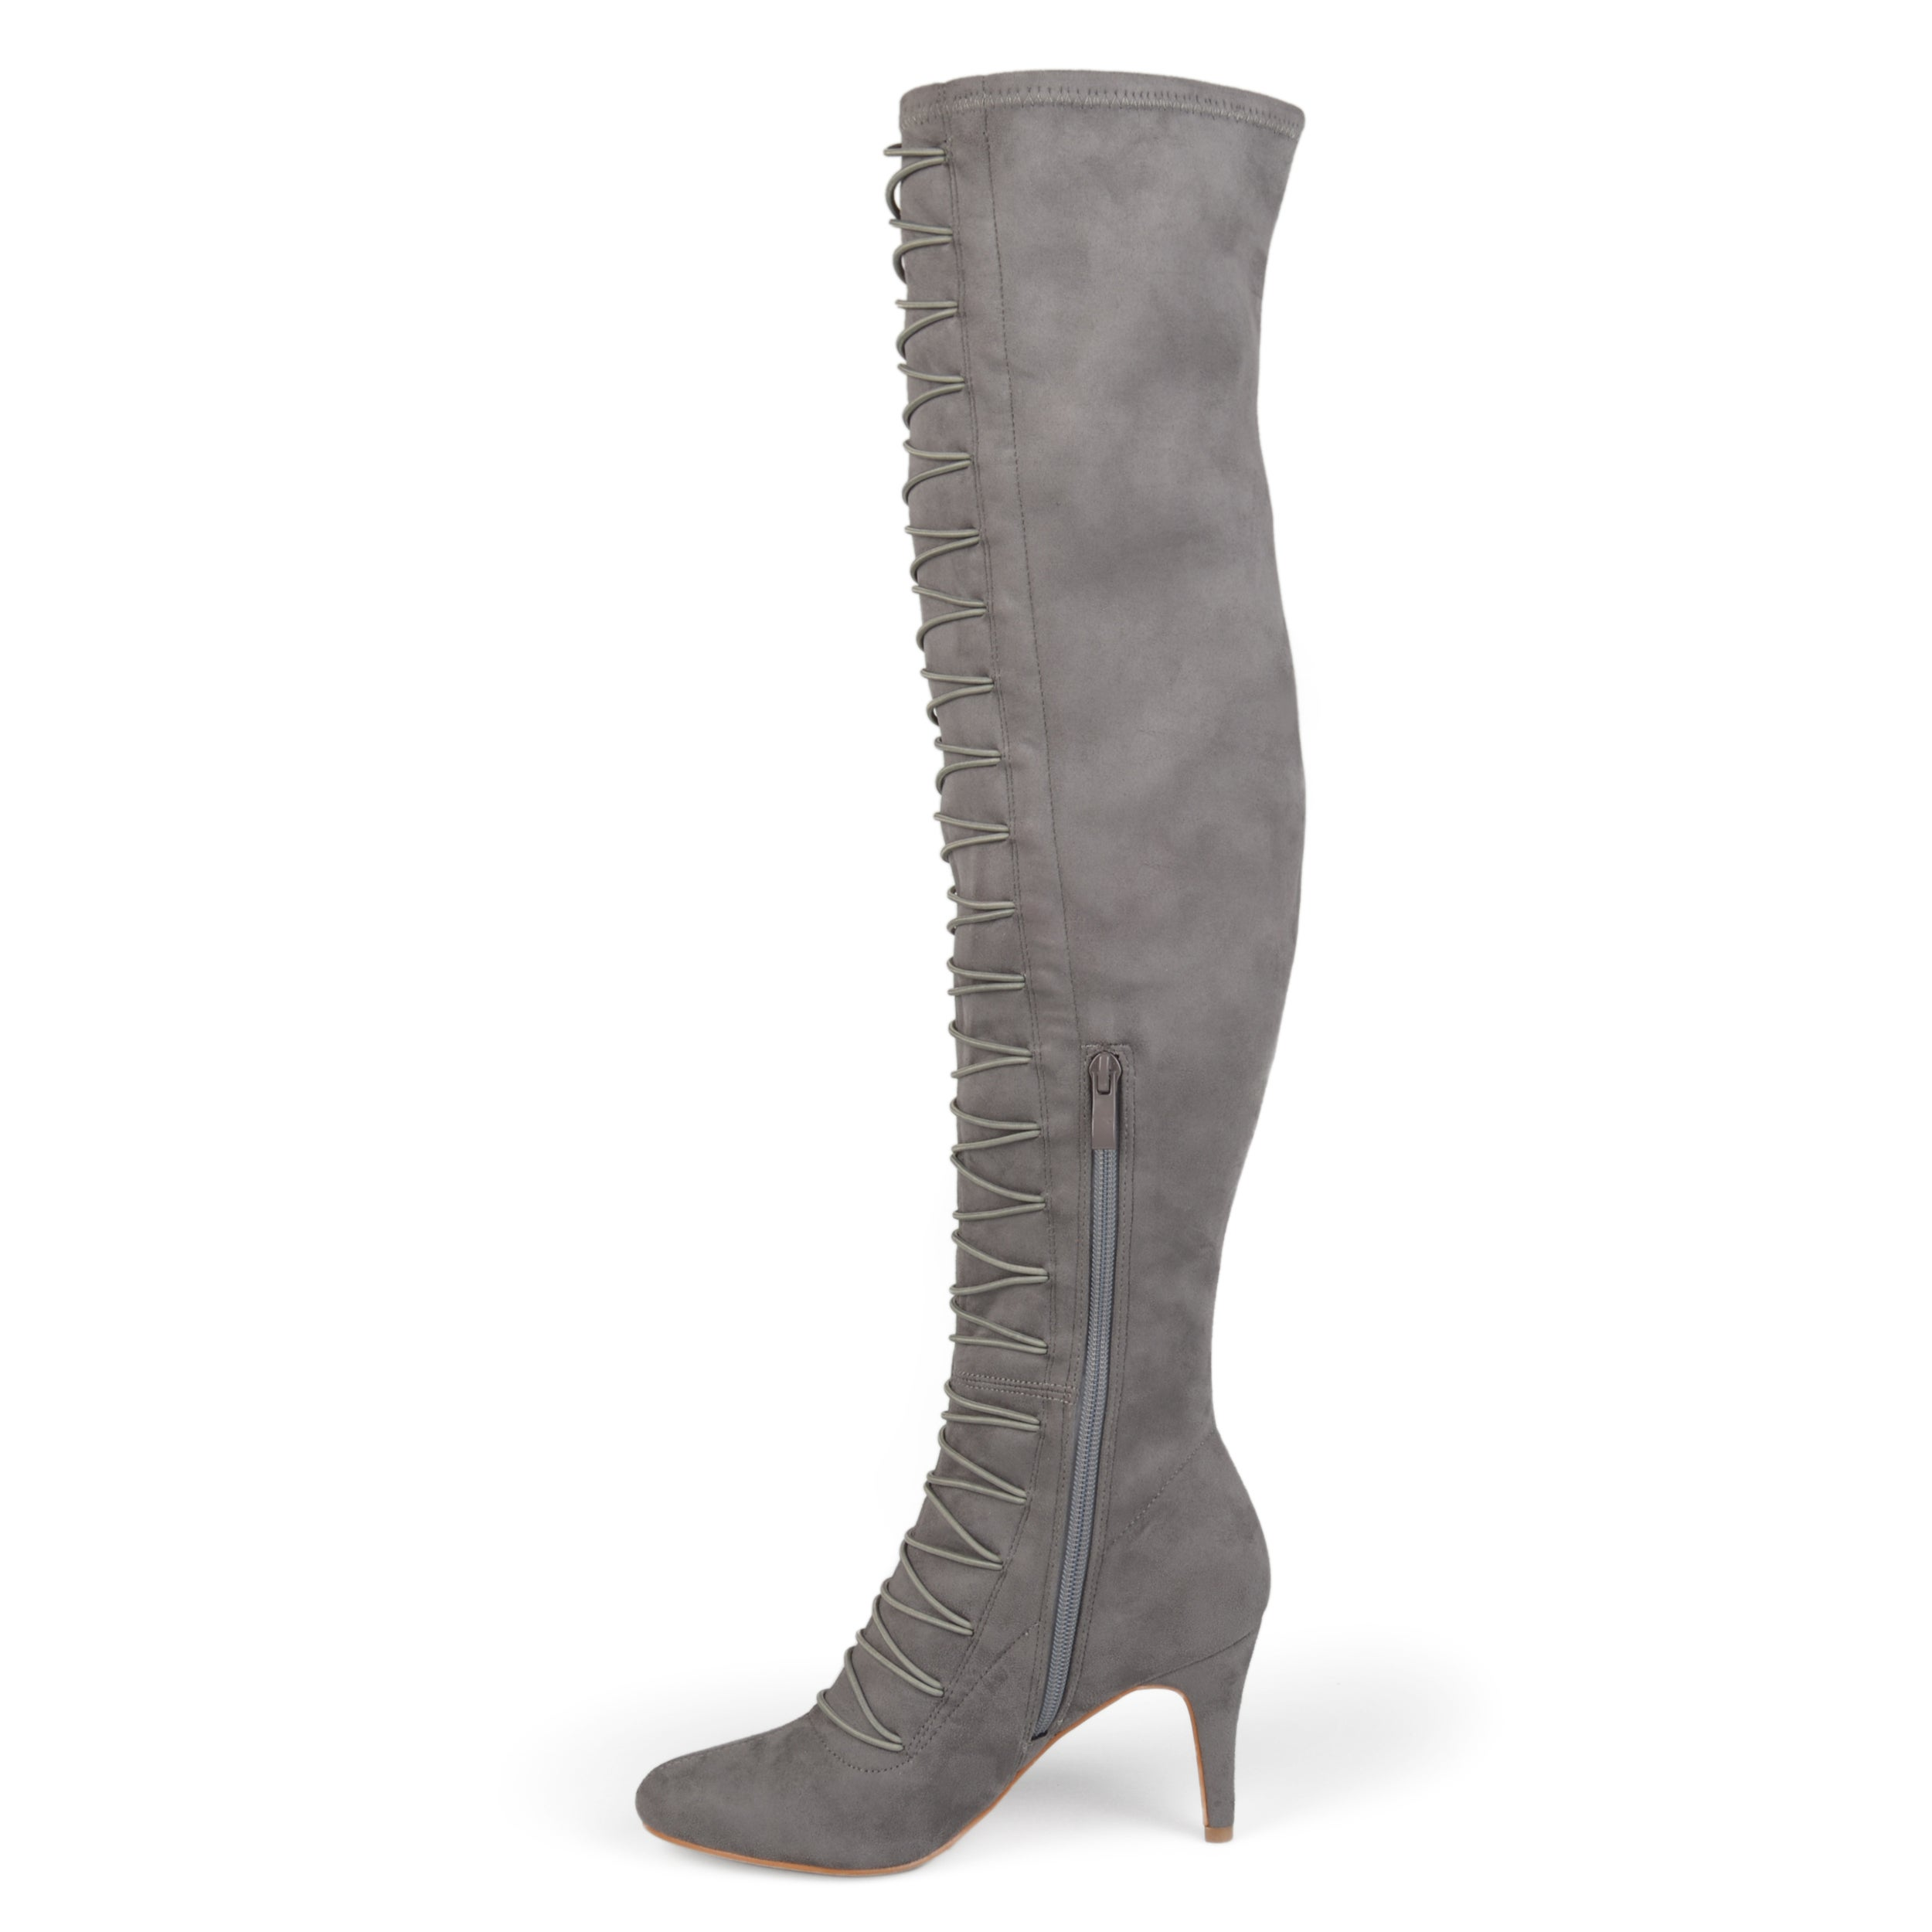 3f8ac311a96 Shop Journee Collection Women s  Trill  Regular and Wide Calf Boots - Free  Shipping Today - Overstock - 17011774